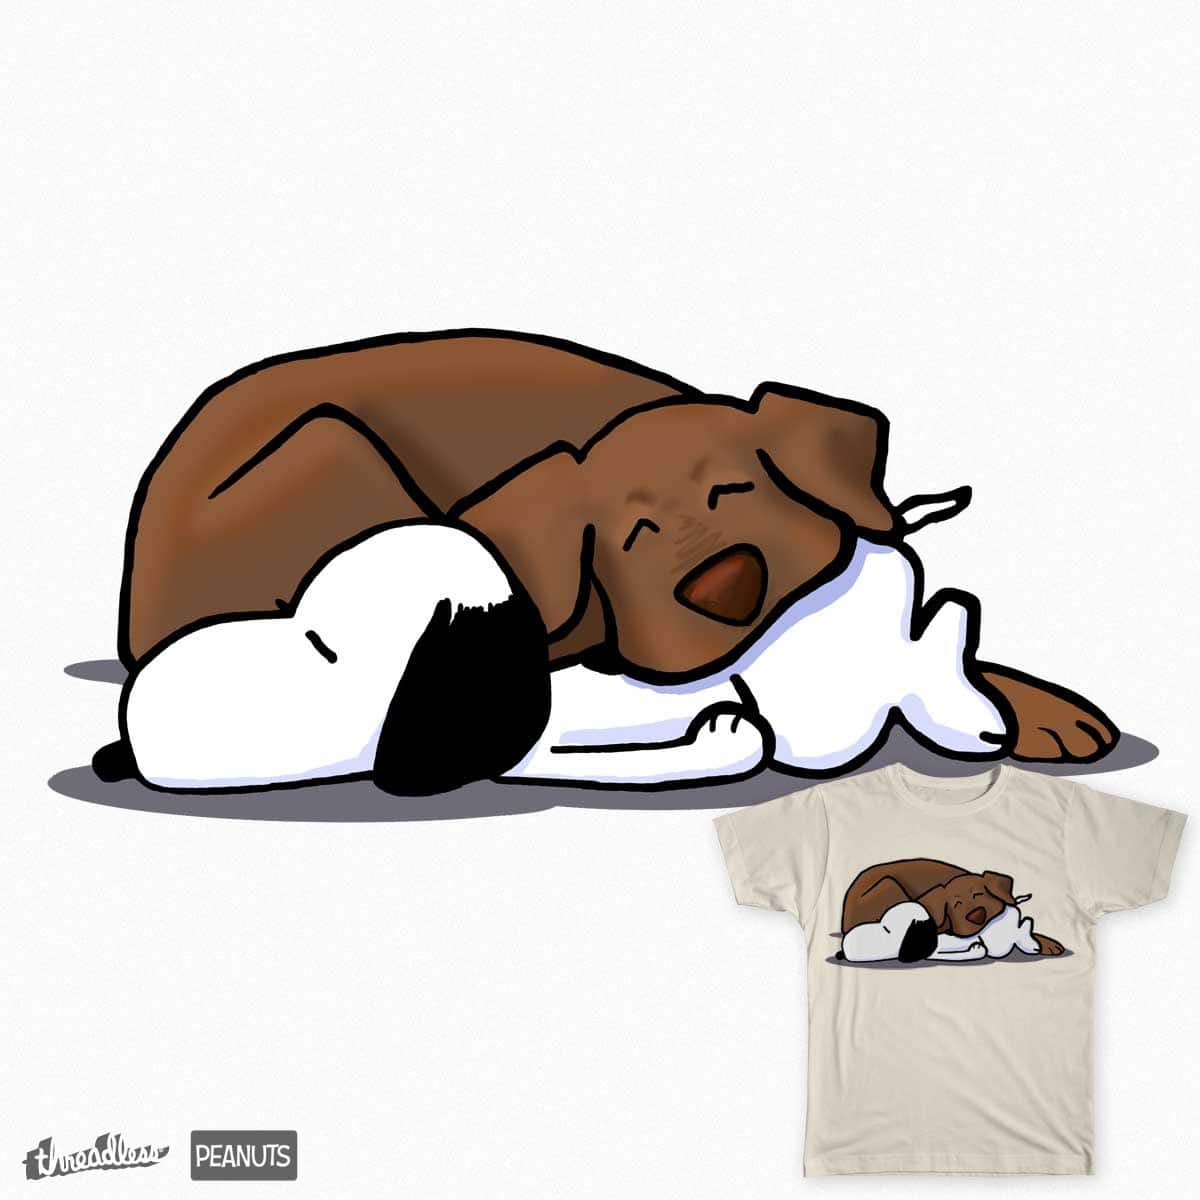 Chocolate Covered Peanuts by KiniArtThreads on Threadless